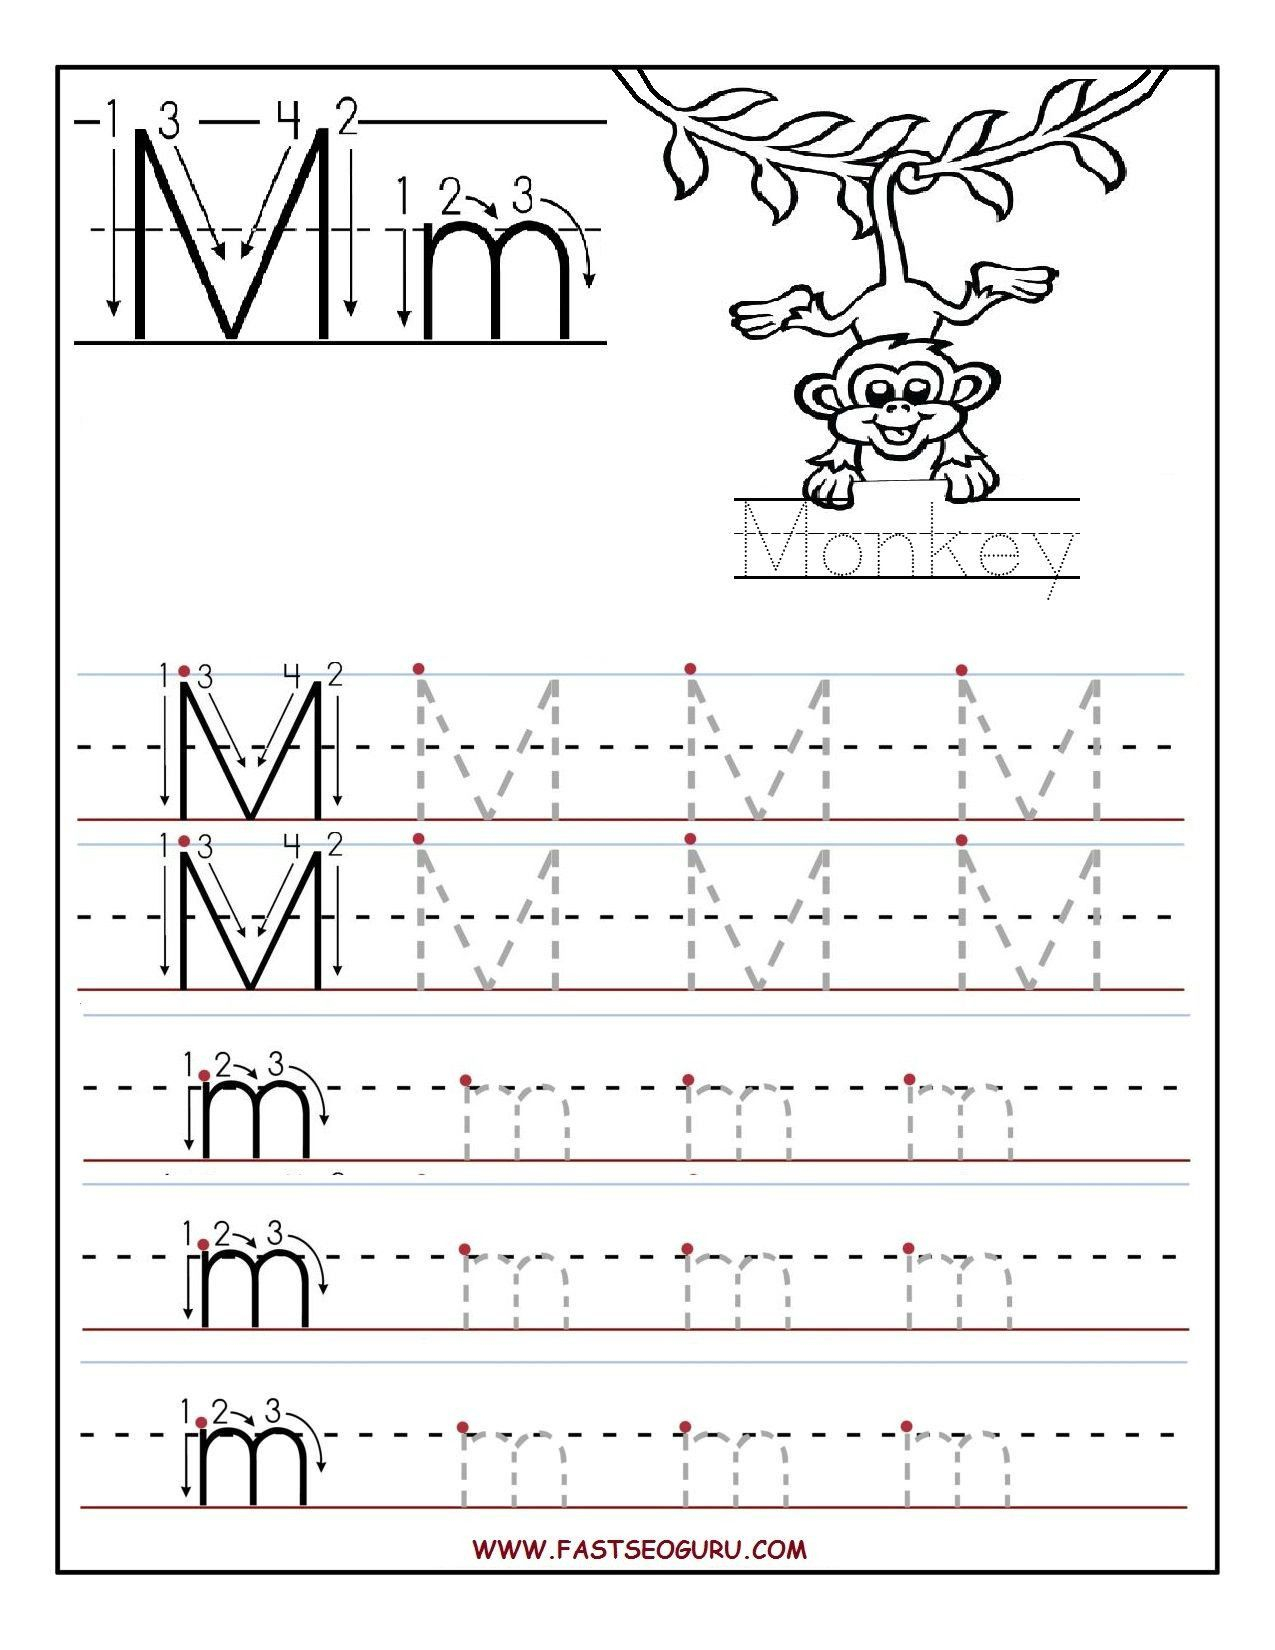 Pin On Kindergarten intended for Letter M Tracing Sheets